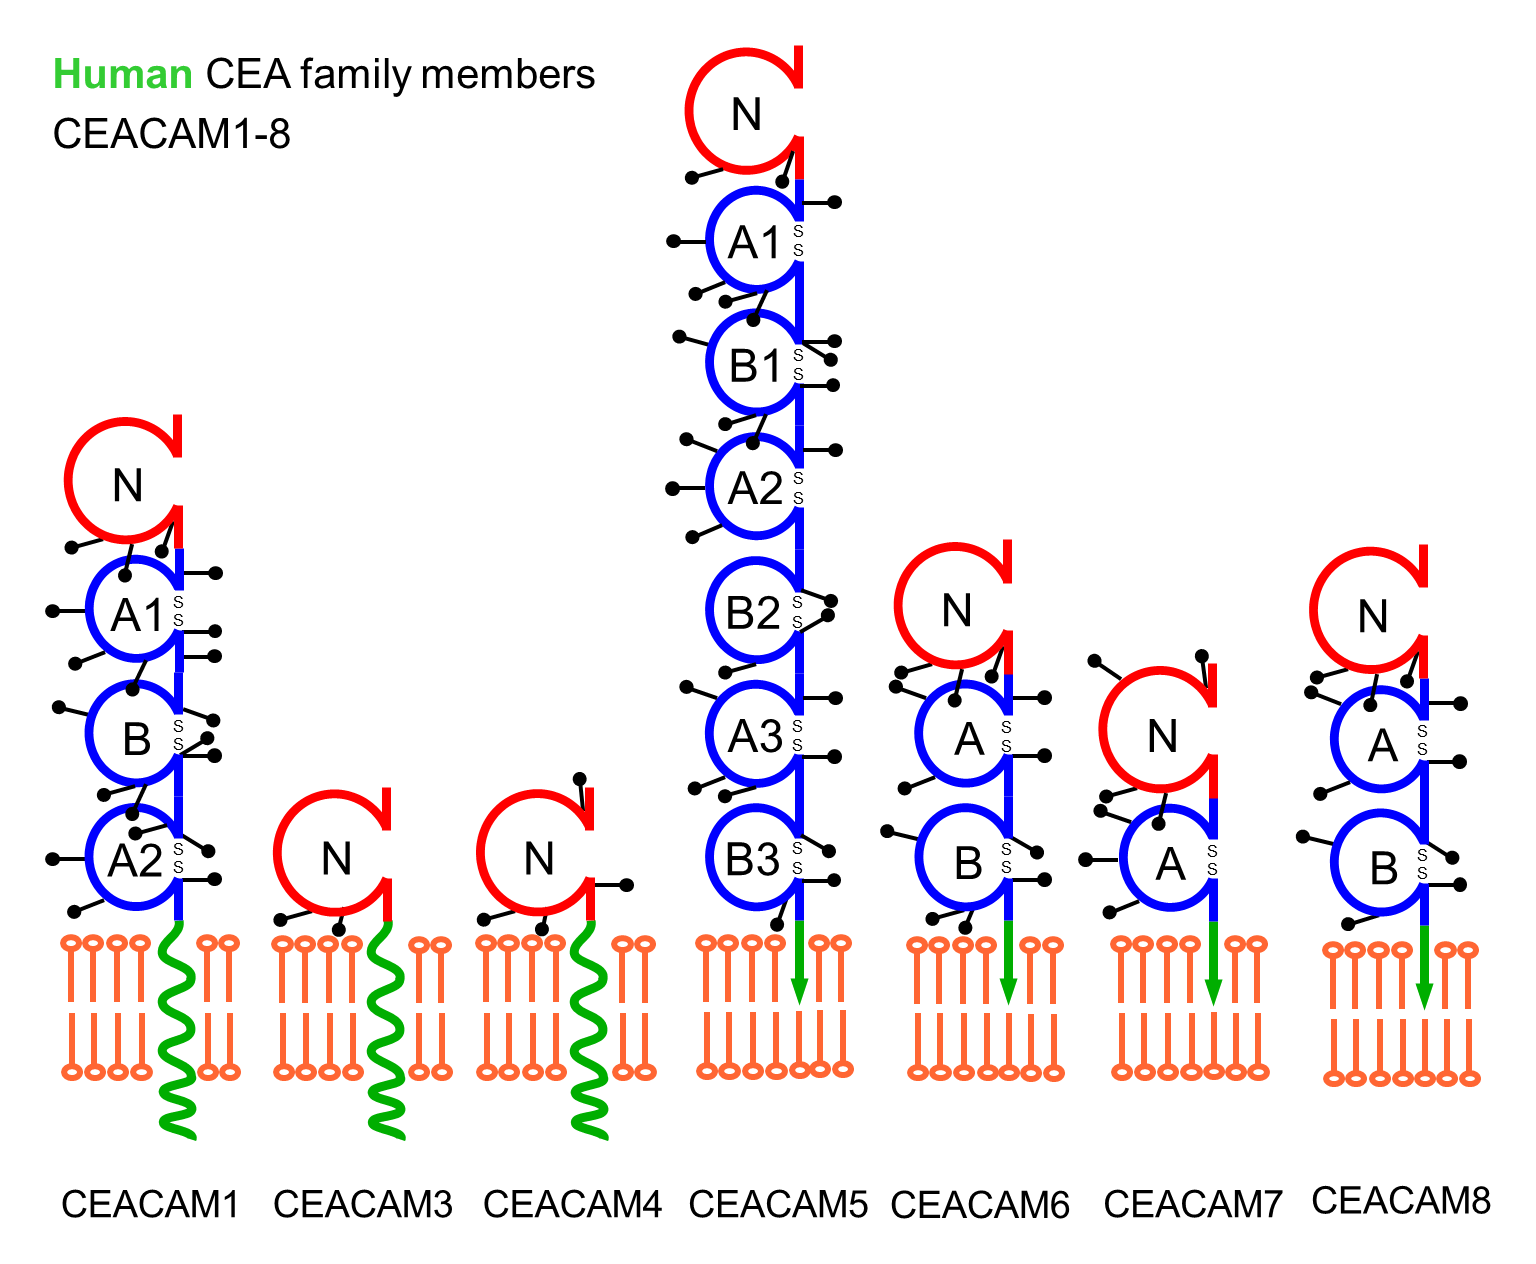 The human CEACAM receptor family. Schematic depiction of important members of the human carcinoembryonic antigen-related cell adhesion molecules.